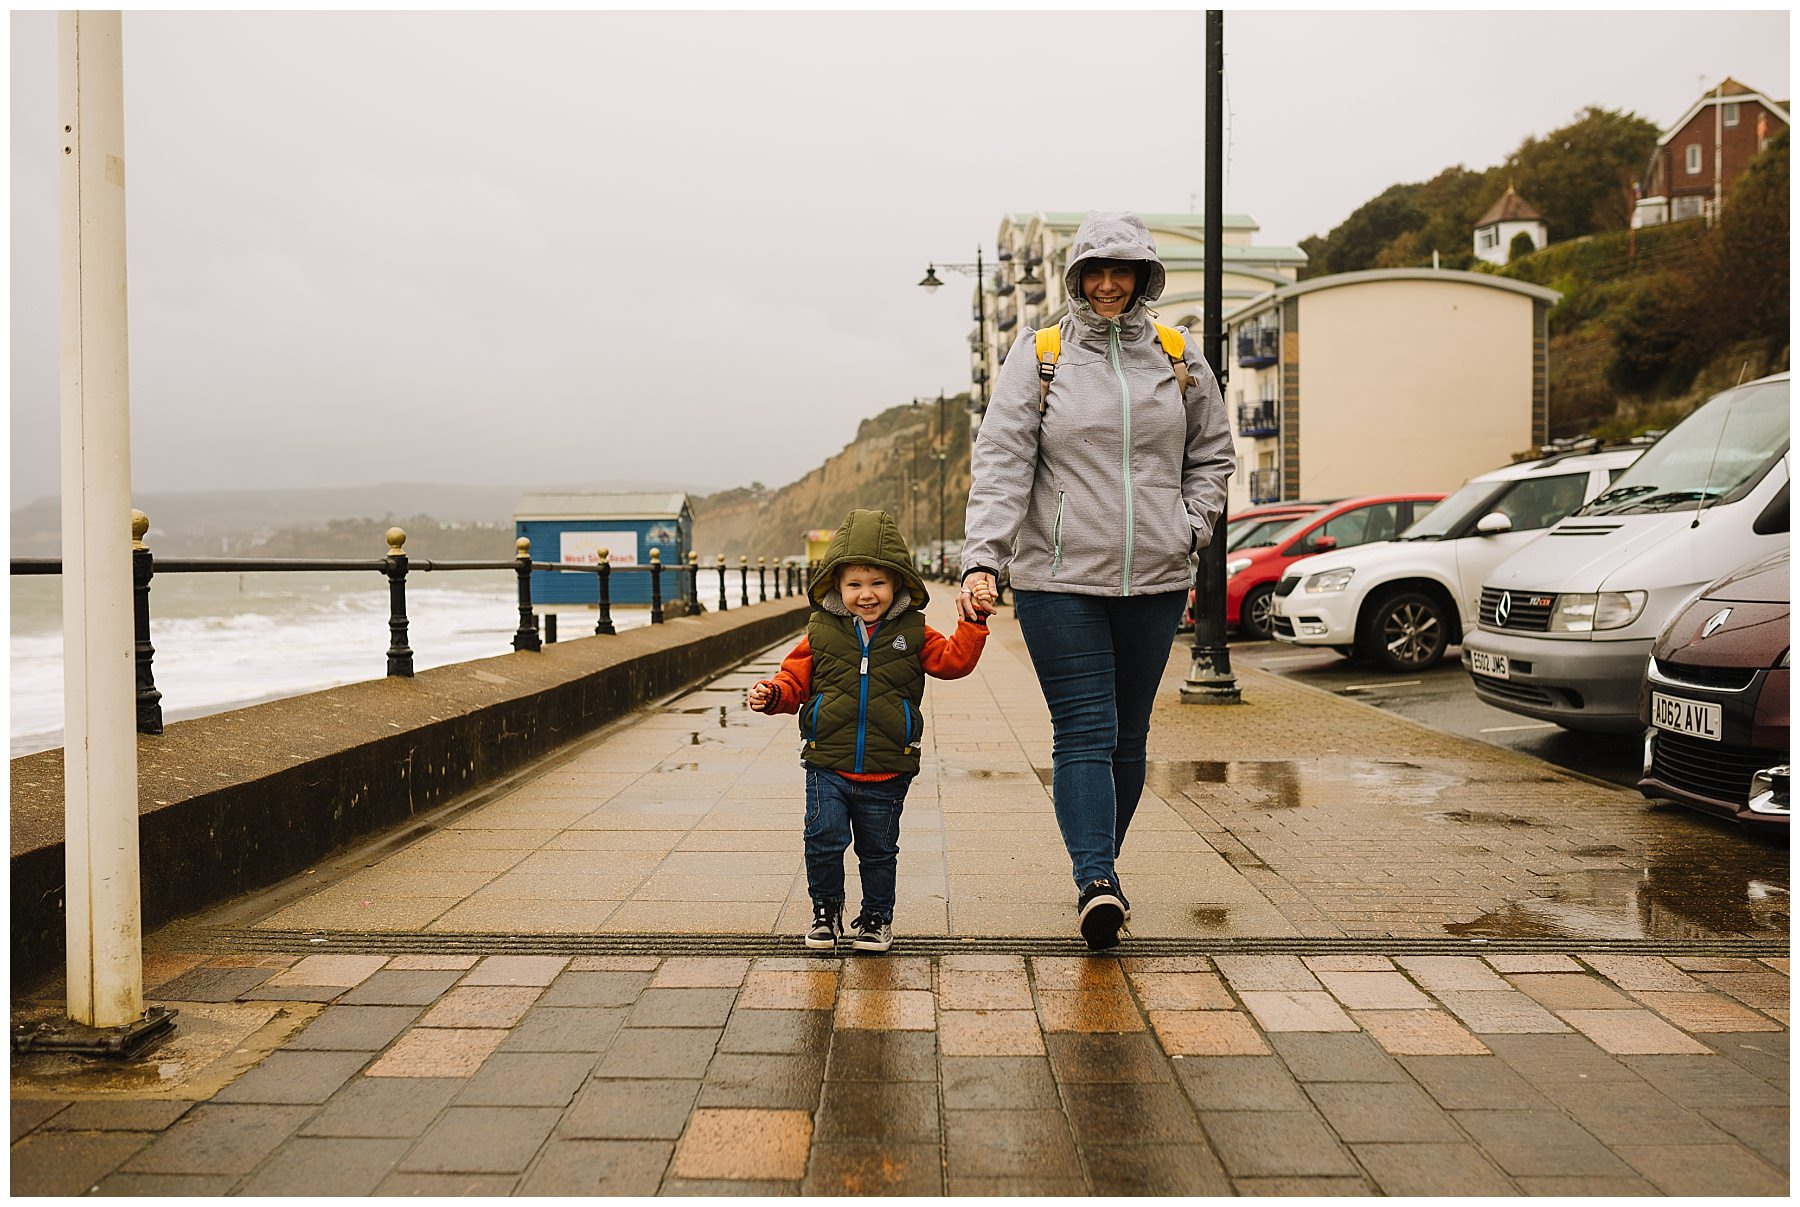 Rainy day family photography at Sandown on the Isle Of Wight